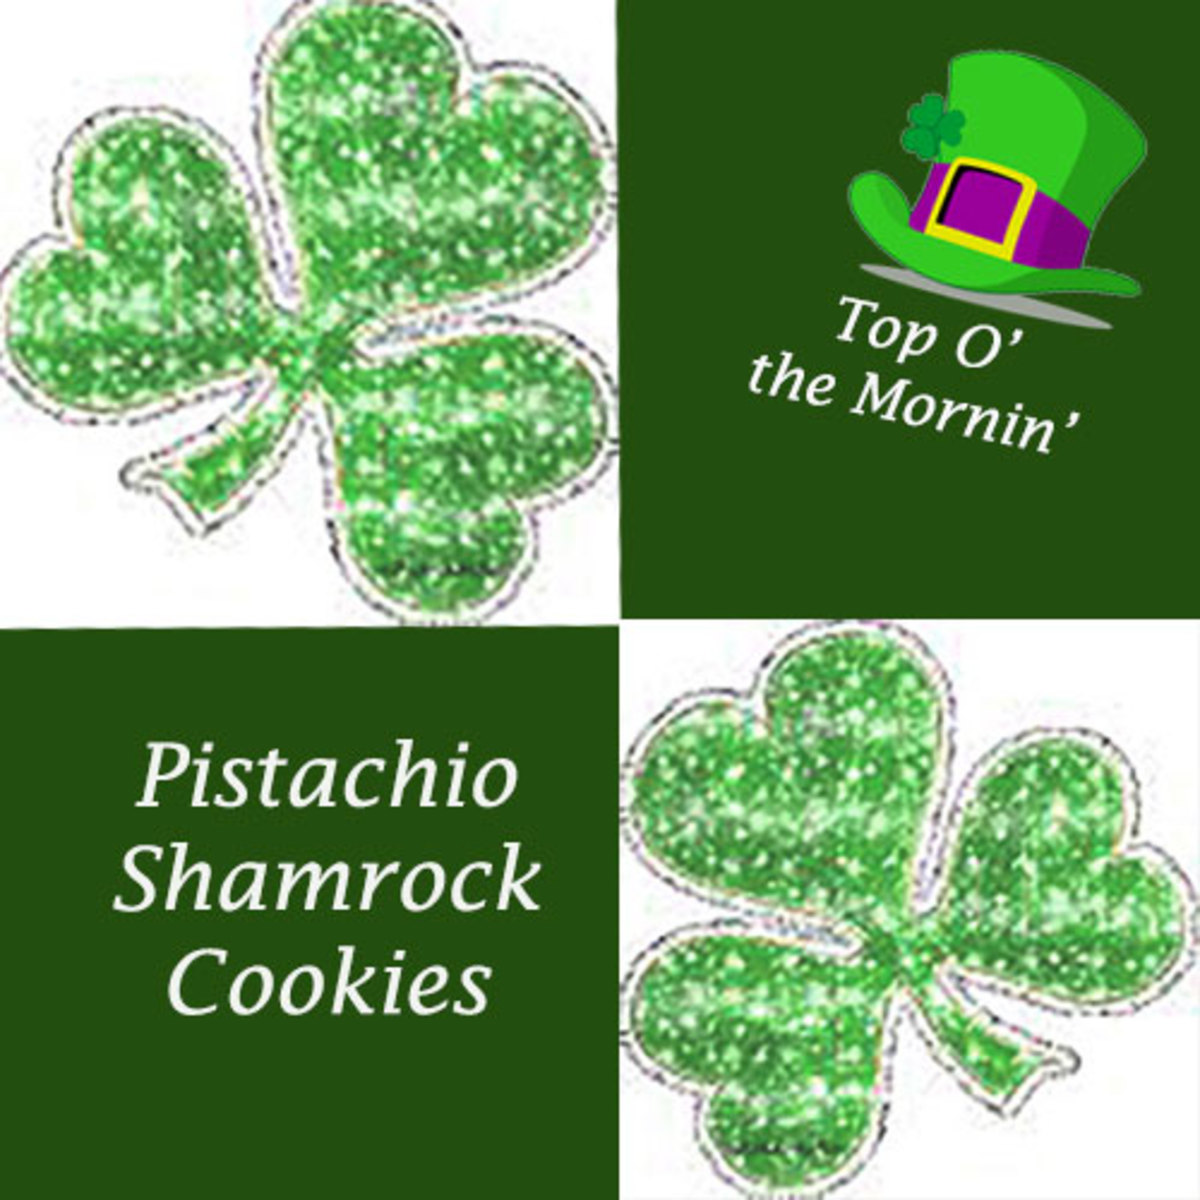 Pistachio Shamrock Cookies for St. Patrick's Day